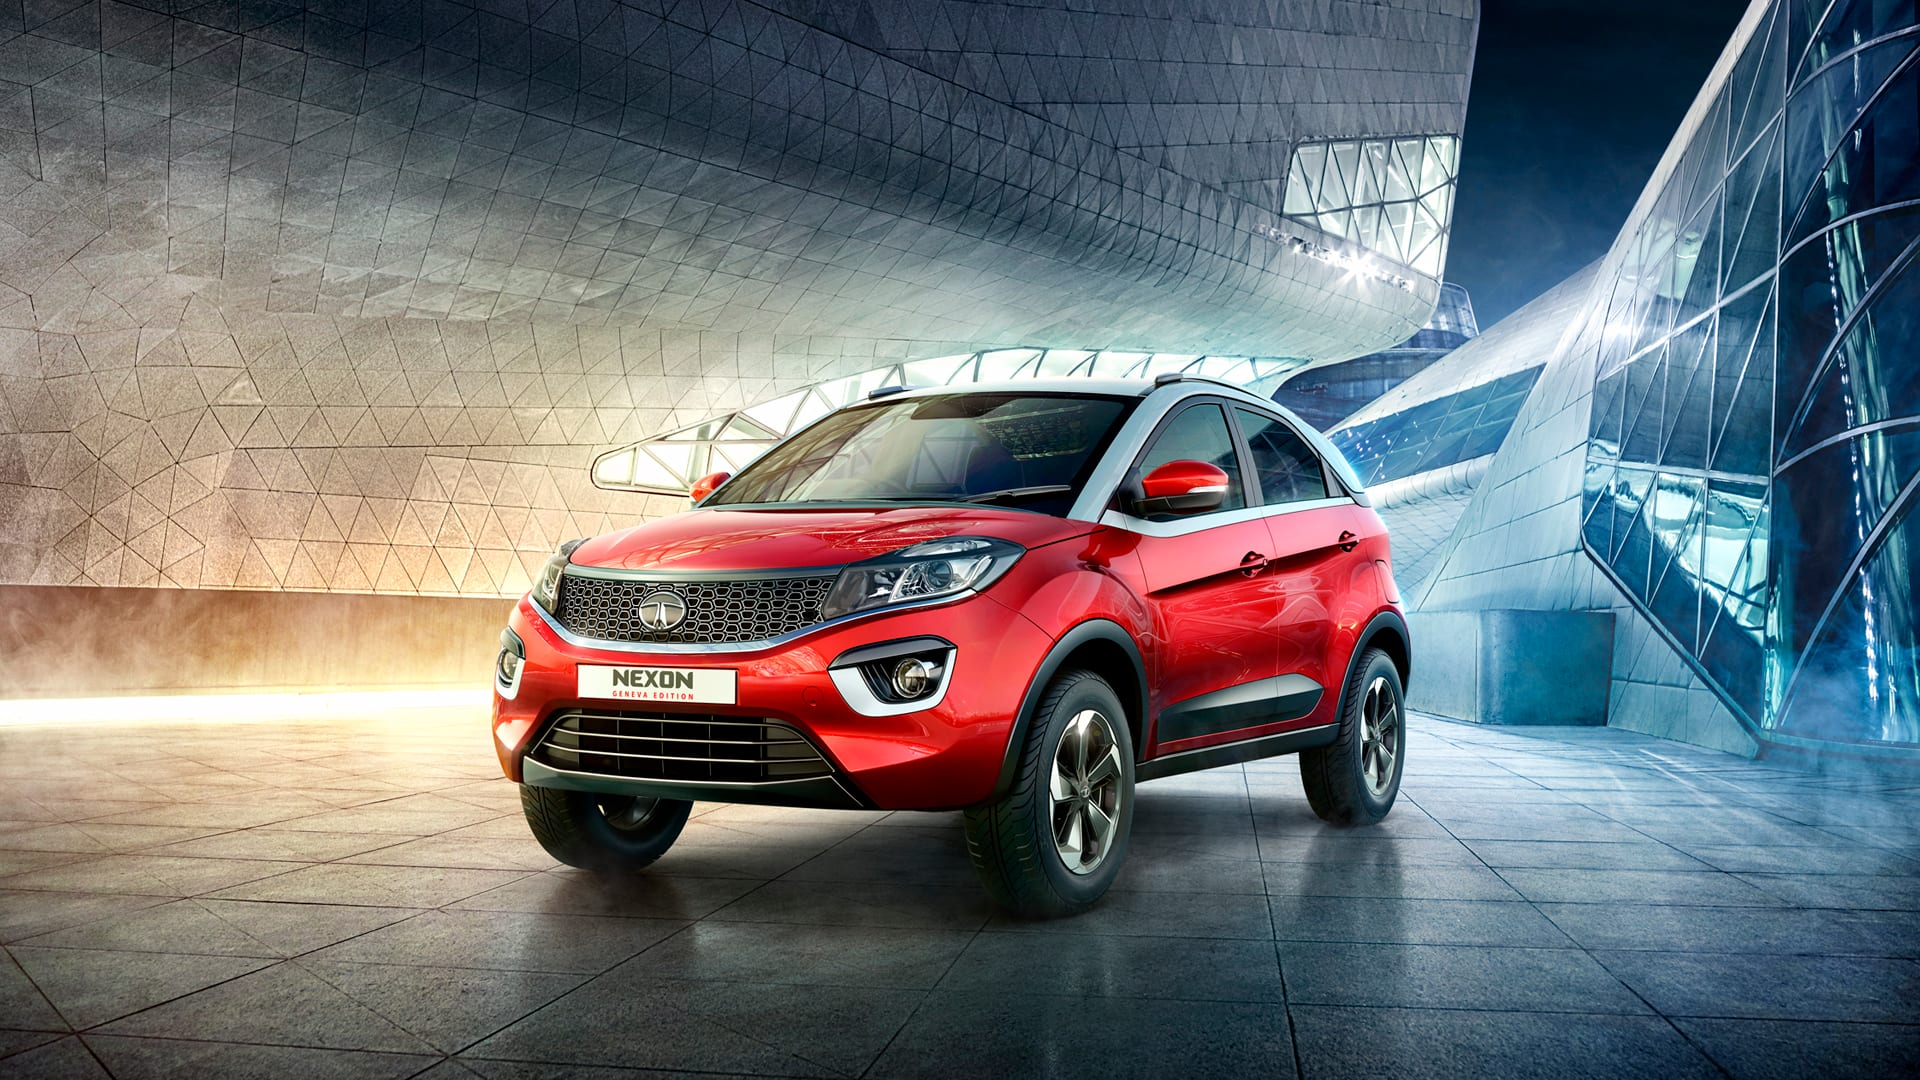 tata motors unveils the nexon sub compact suv at the 2017 geneva motor show find new. Black Bedroom Furniture Sets. Home Design Ideas